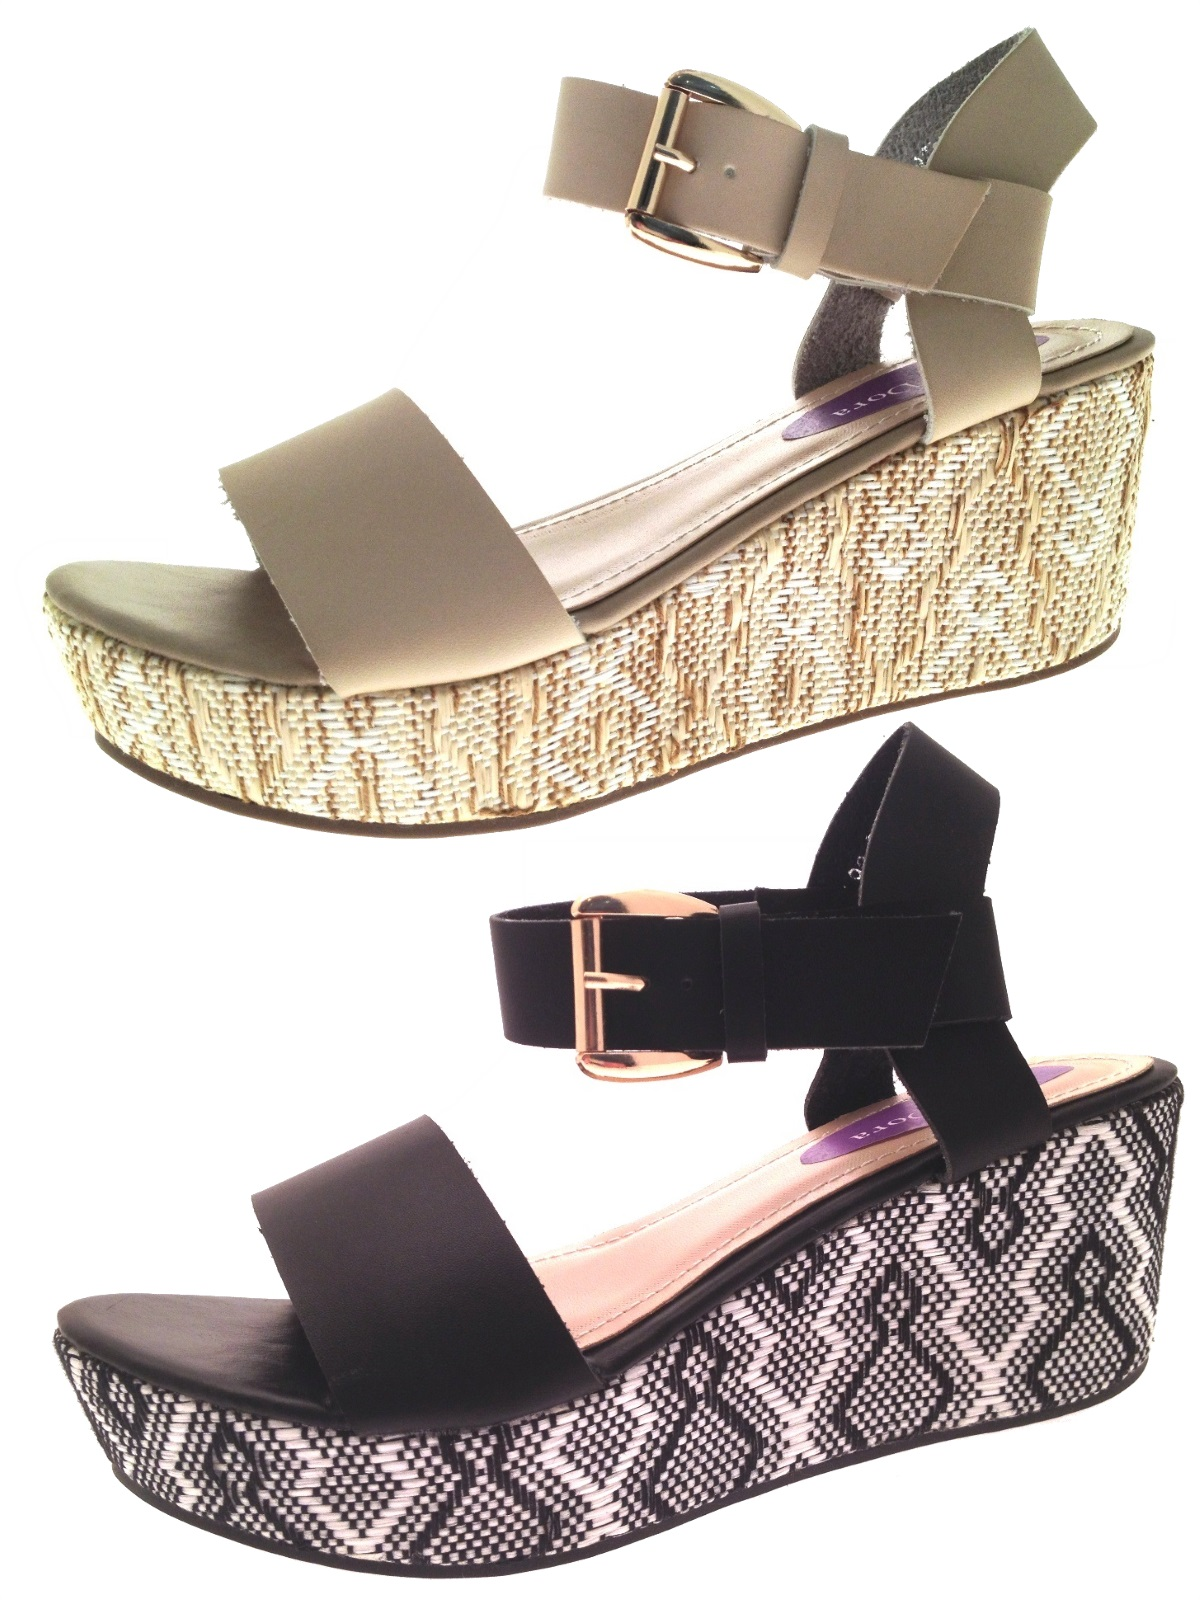 Free shipping BOTH ways on Shoes, Wedges, Girls, from our vast selection of styles. Fast delivery, and 24/7/ real-person service with a smile. Click or call